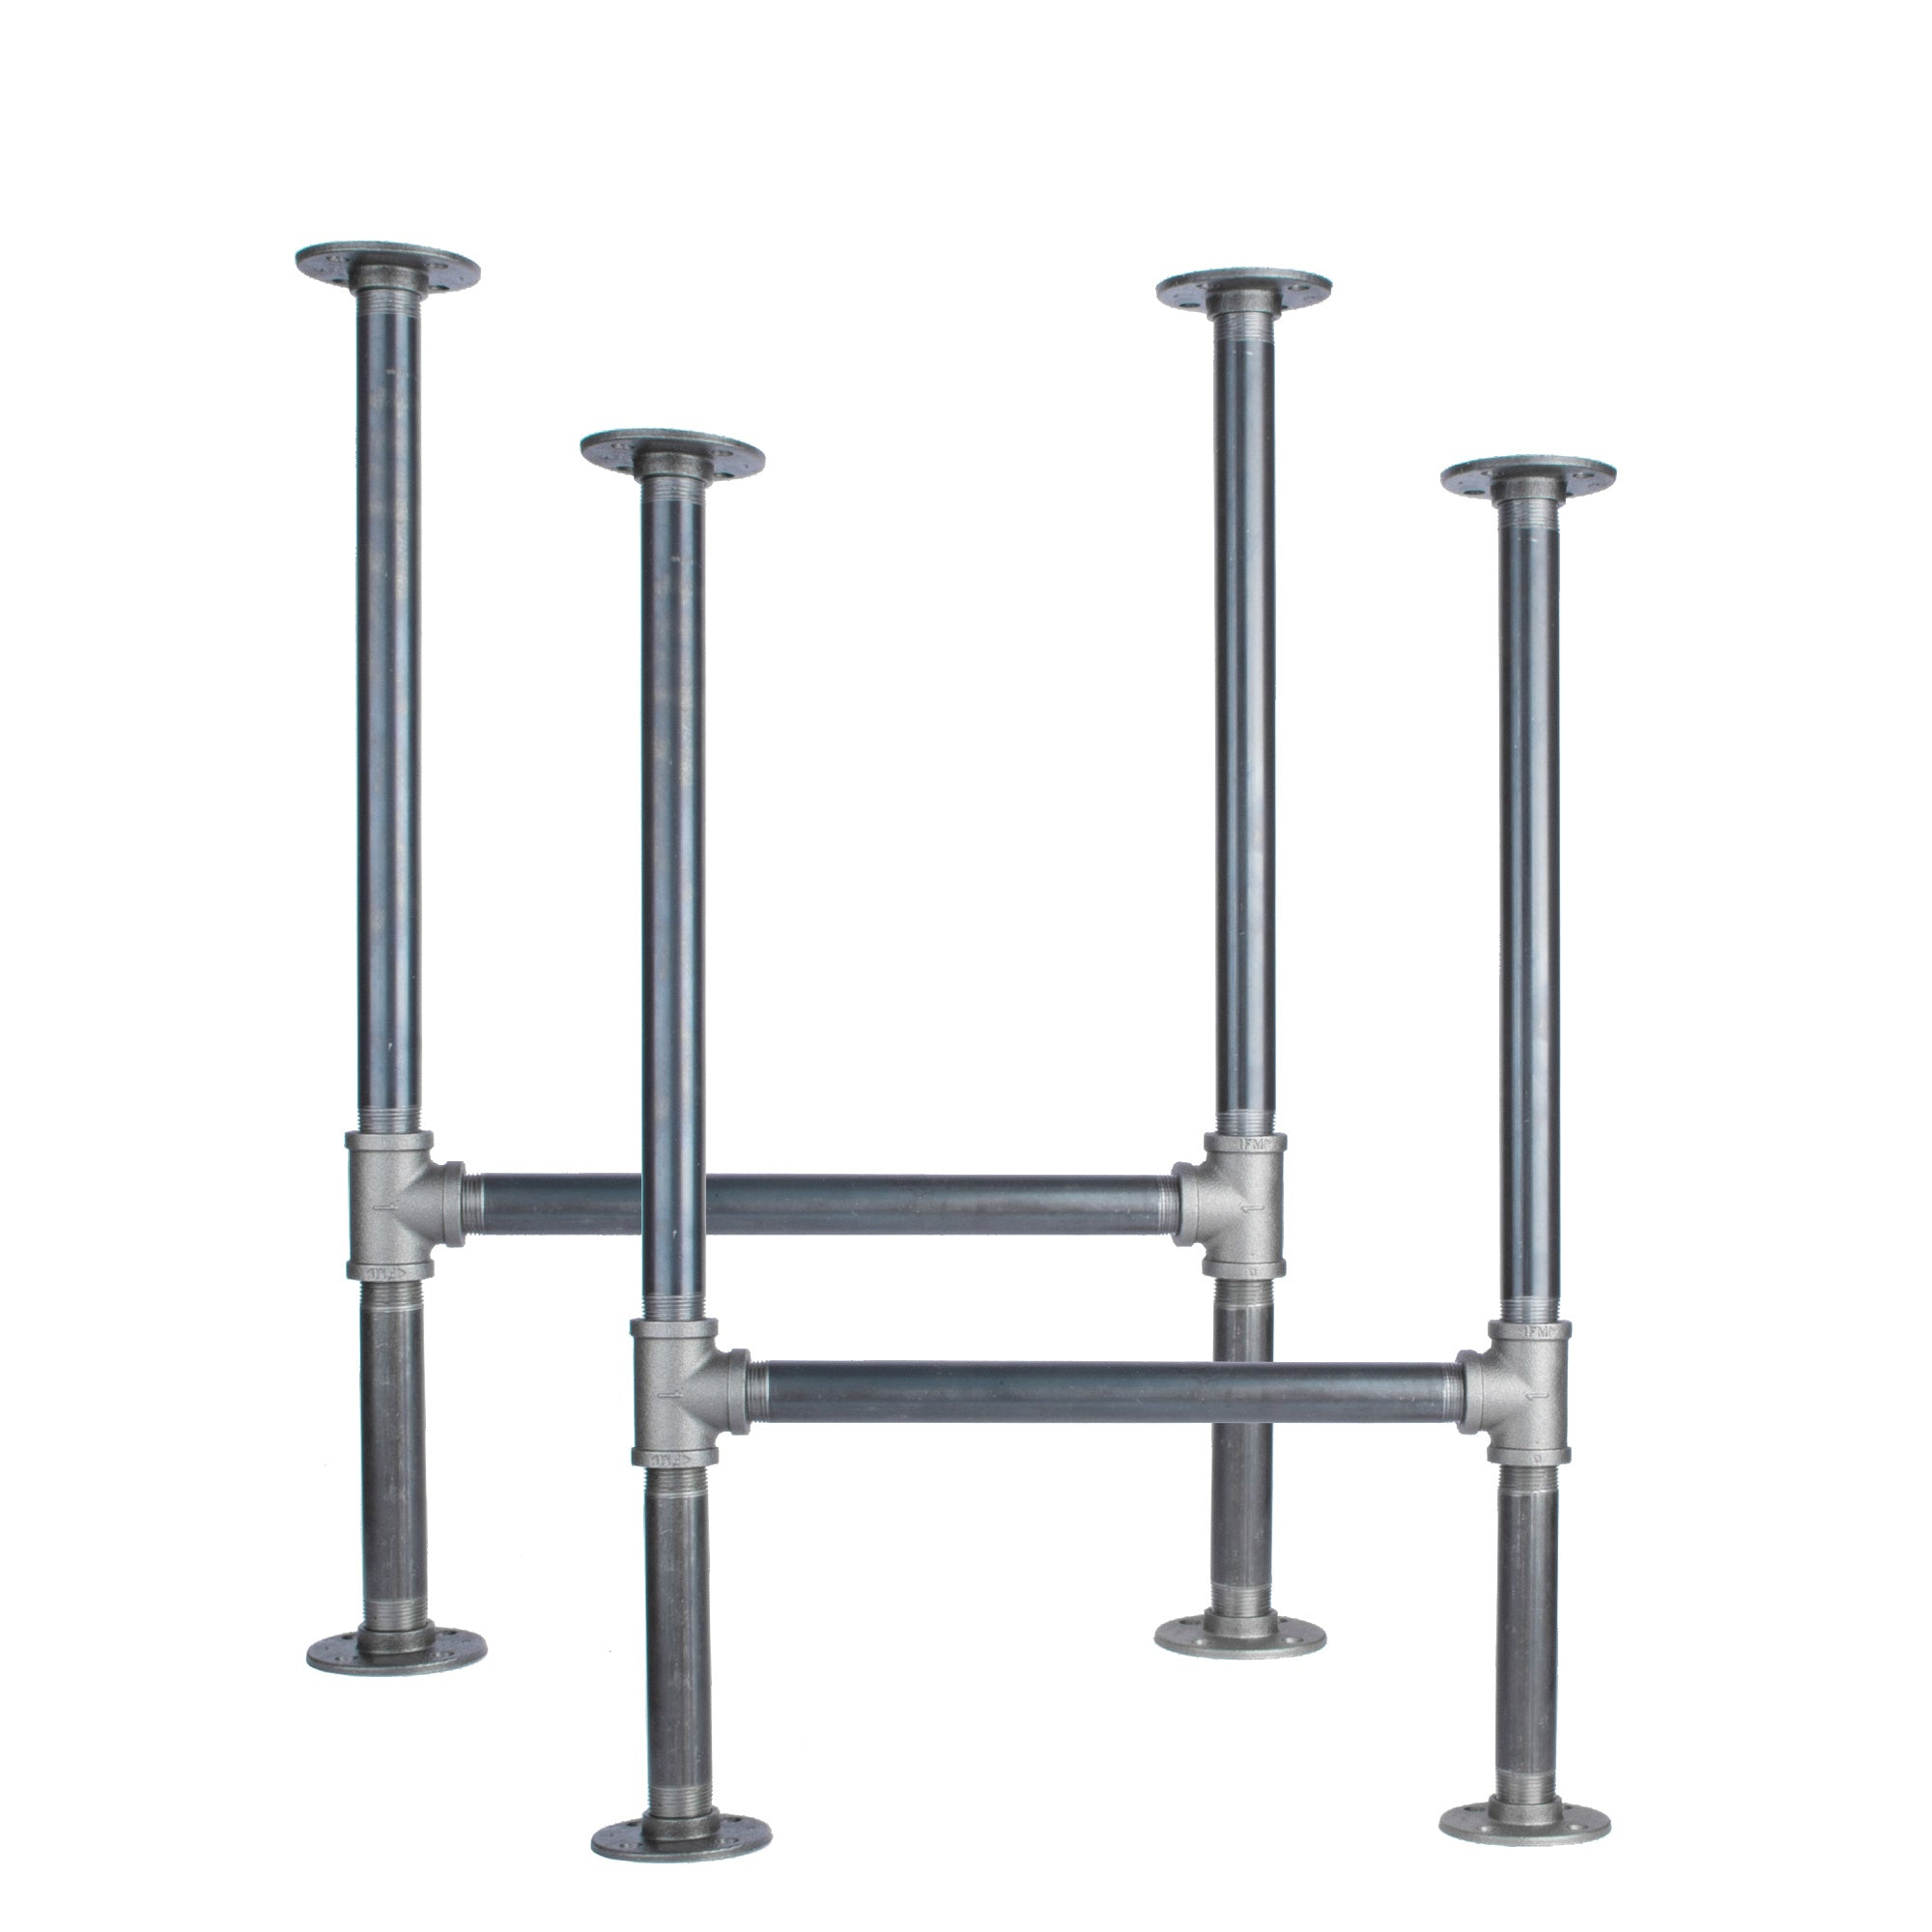 1 in. Heavy Duty H Desk Legs - 2 Pack